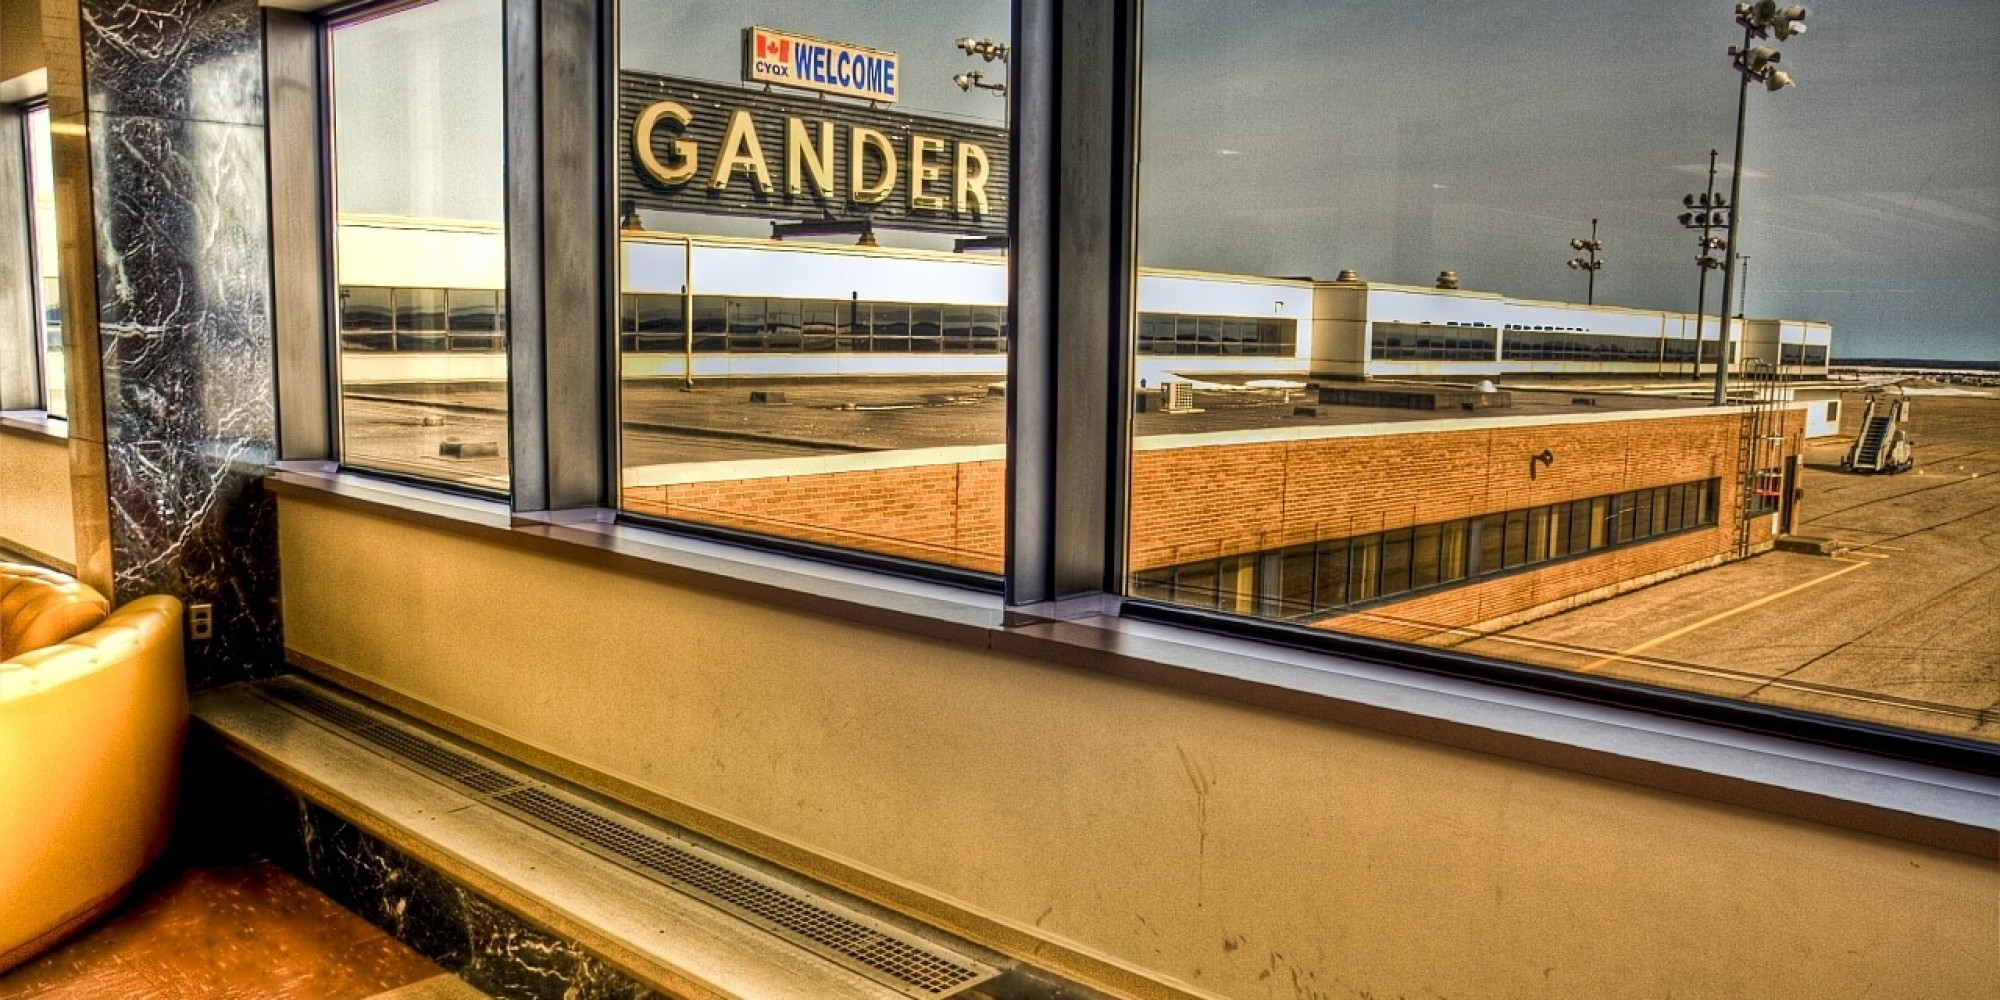 gander international airport on 39 endangered 39 list but officials say